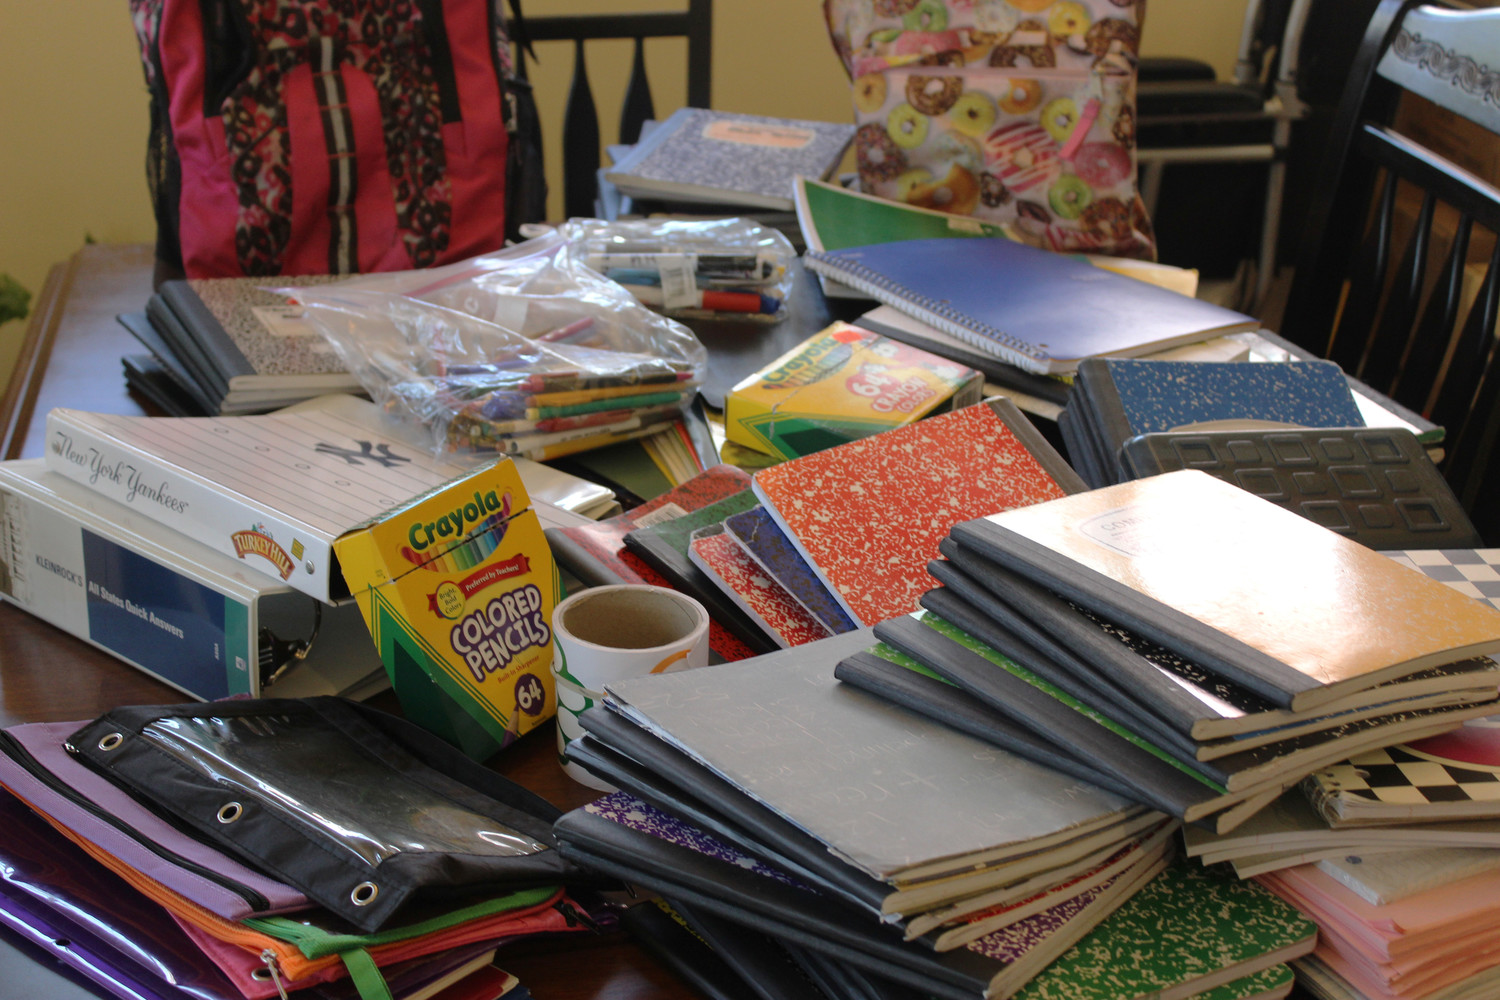 Benowitz has collected close to one hundred new and lightly used notebooks, crayons, two knapsacks and other school supplies.